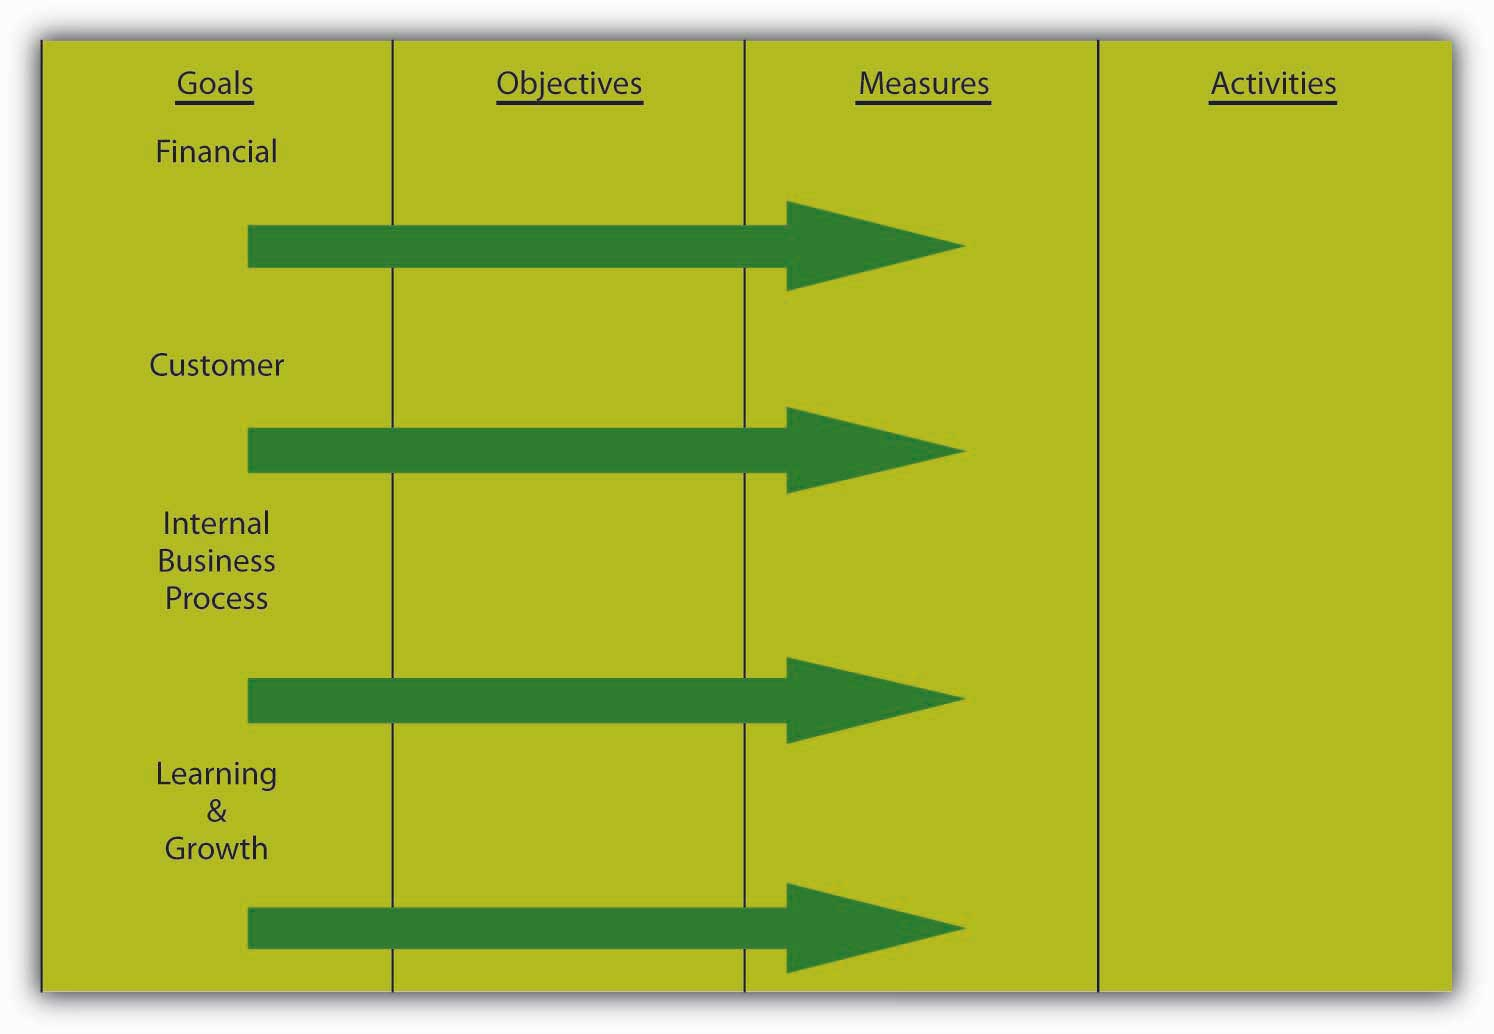 Using the Balanced Scorecard to Translate Goals into Activities